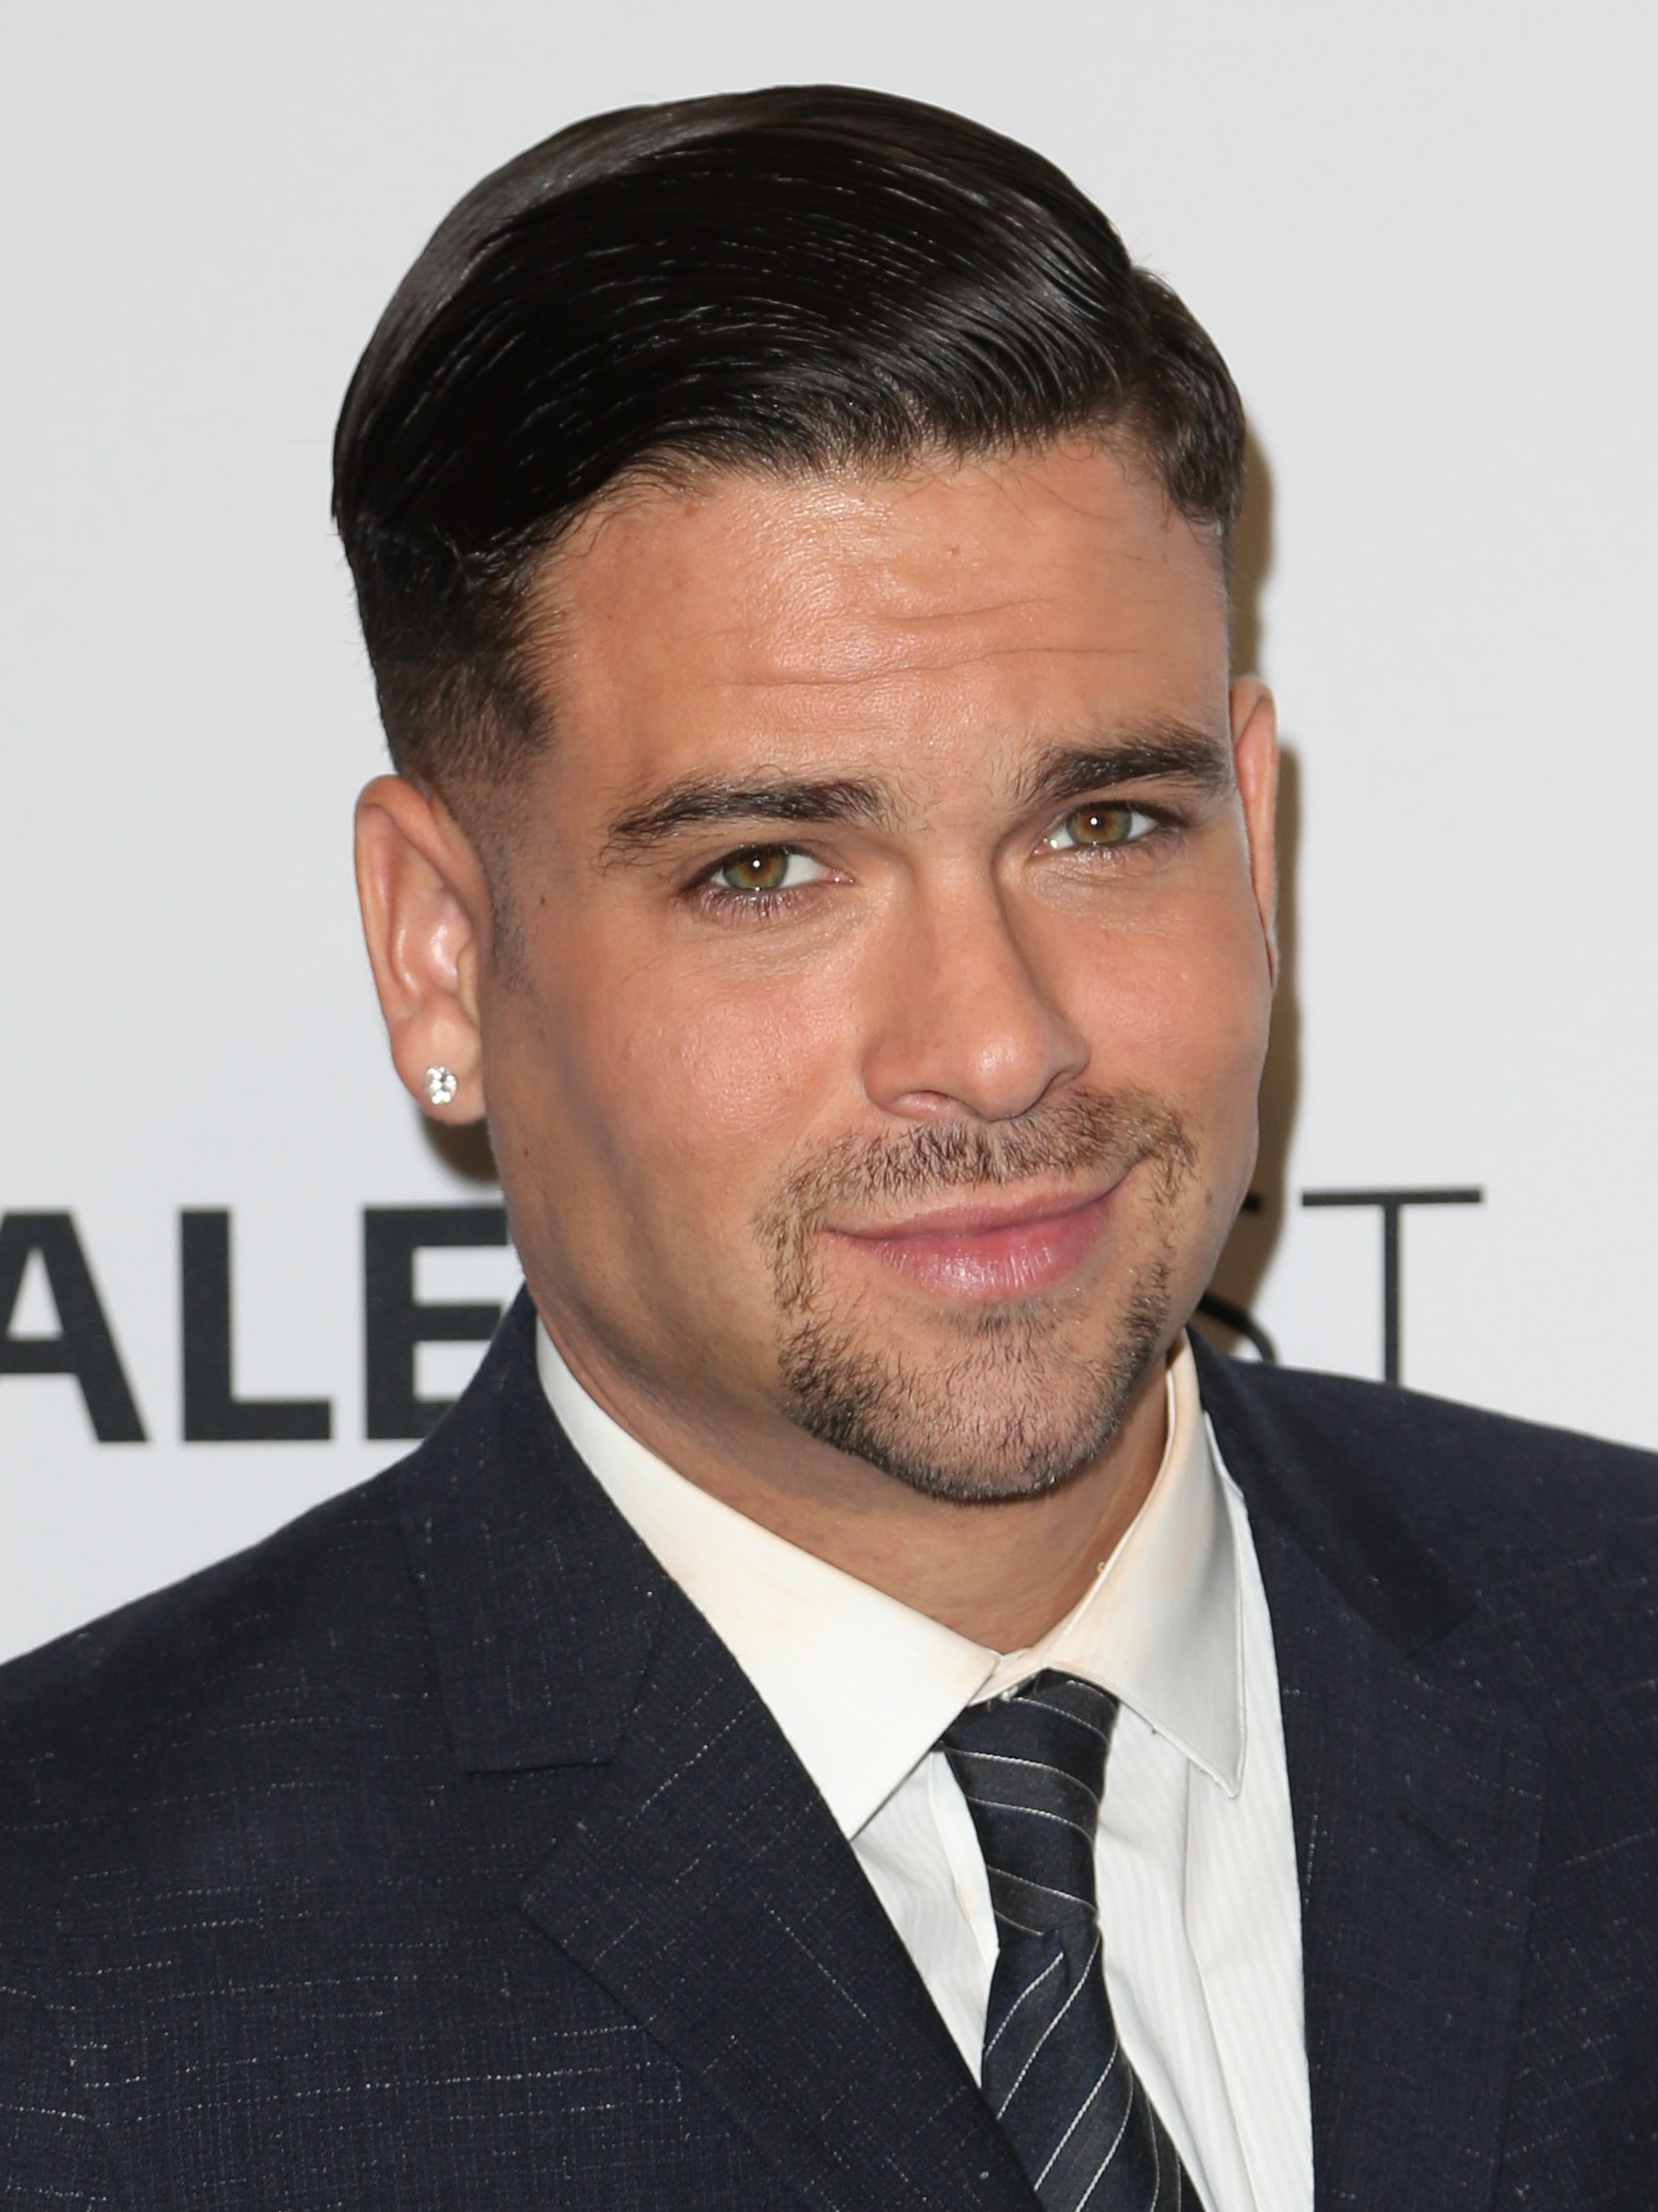 Celebrities attend The Paley Center For Media's 32nd Annual PALEYFEST LA - 'Glee' at Dolby Theatre in Hollywood.  Featuring: Mark Salling Where: Los Angeles, California, United States When: 13 Mar 2015 Credit: Brian To/WENN.com